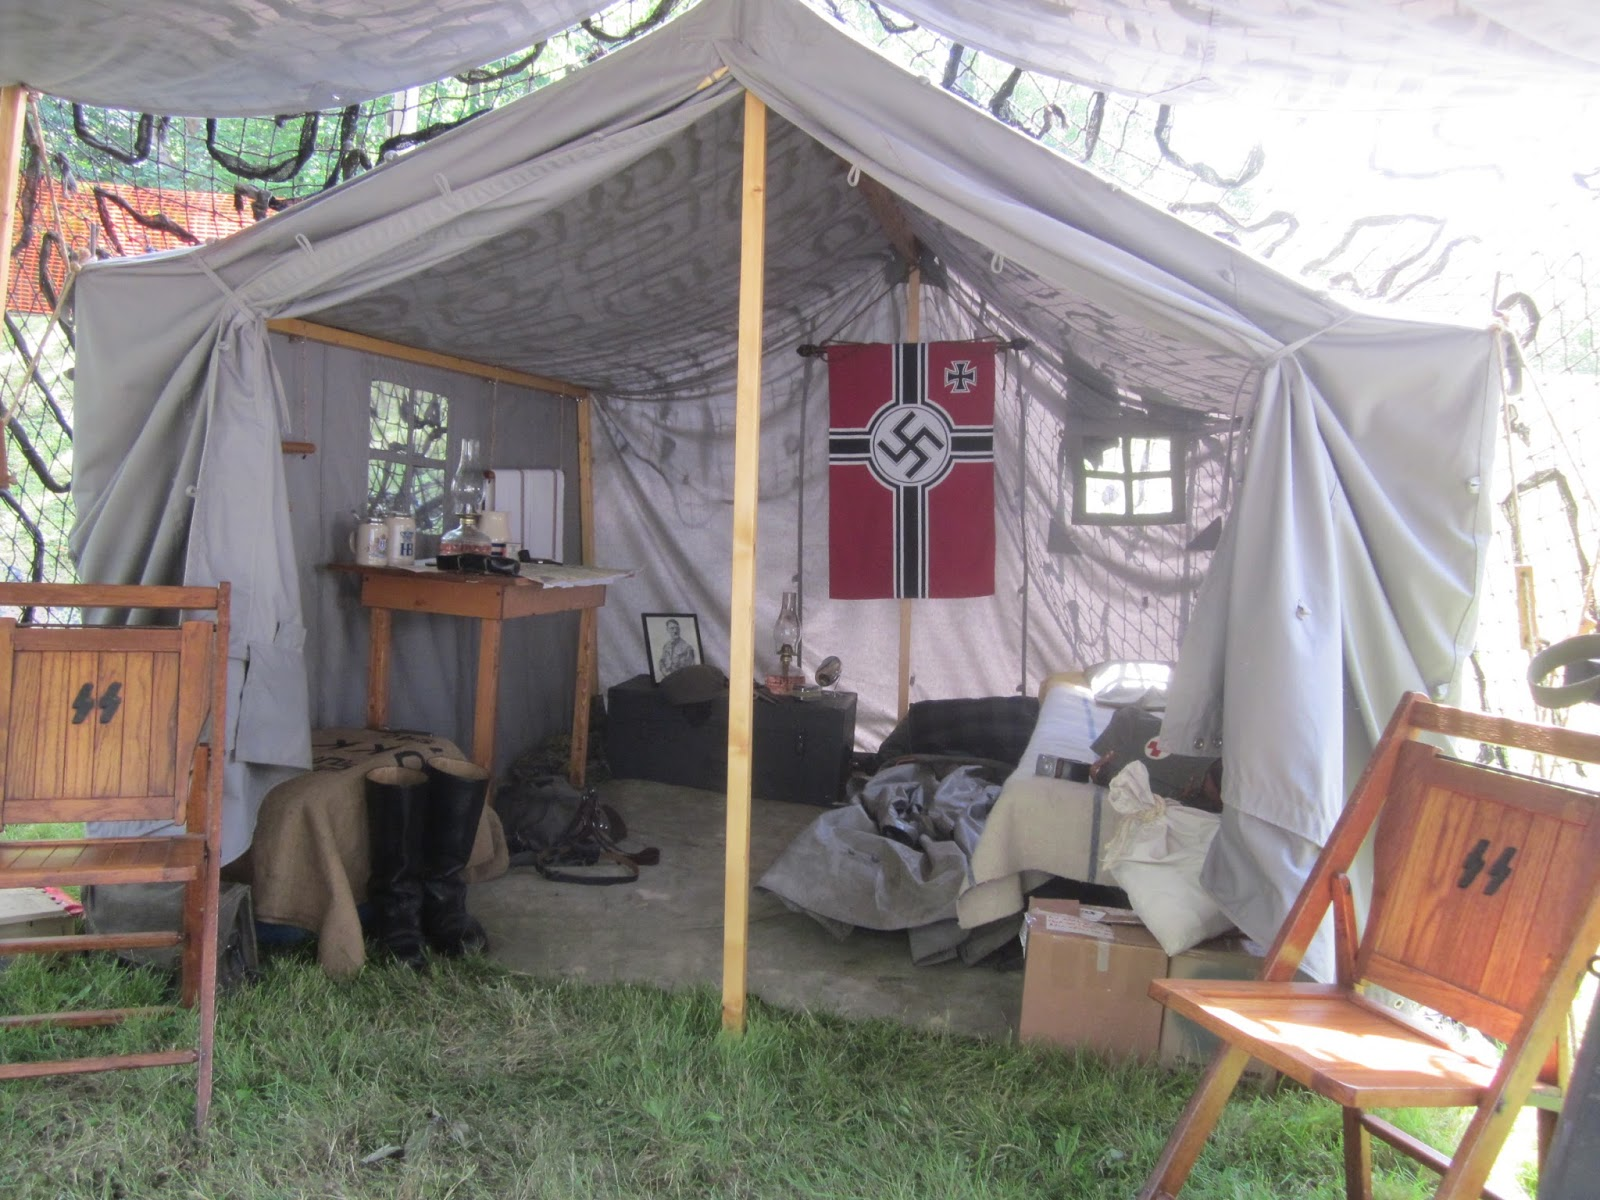 D-Day WWII Reenactment German Enc&ment & Battleground Hobbies: D-Day WWII Reenactment food for Bolt Action?